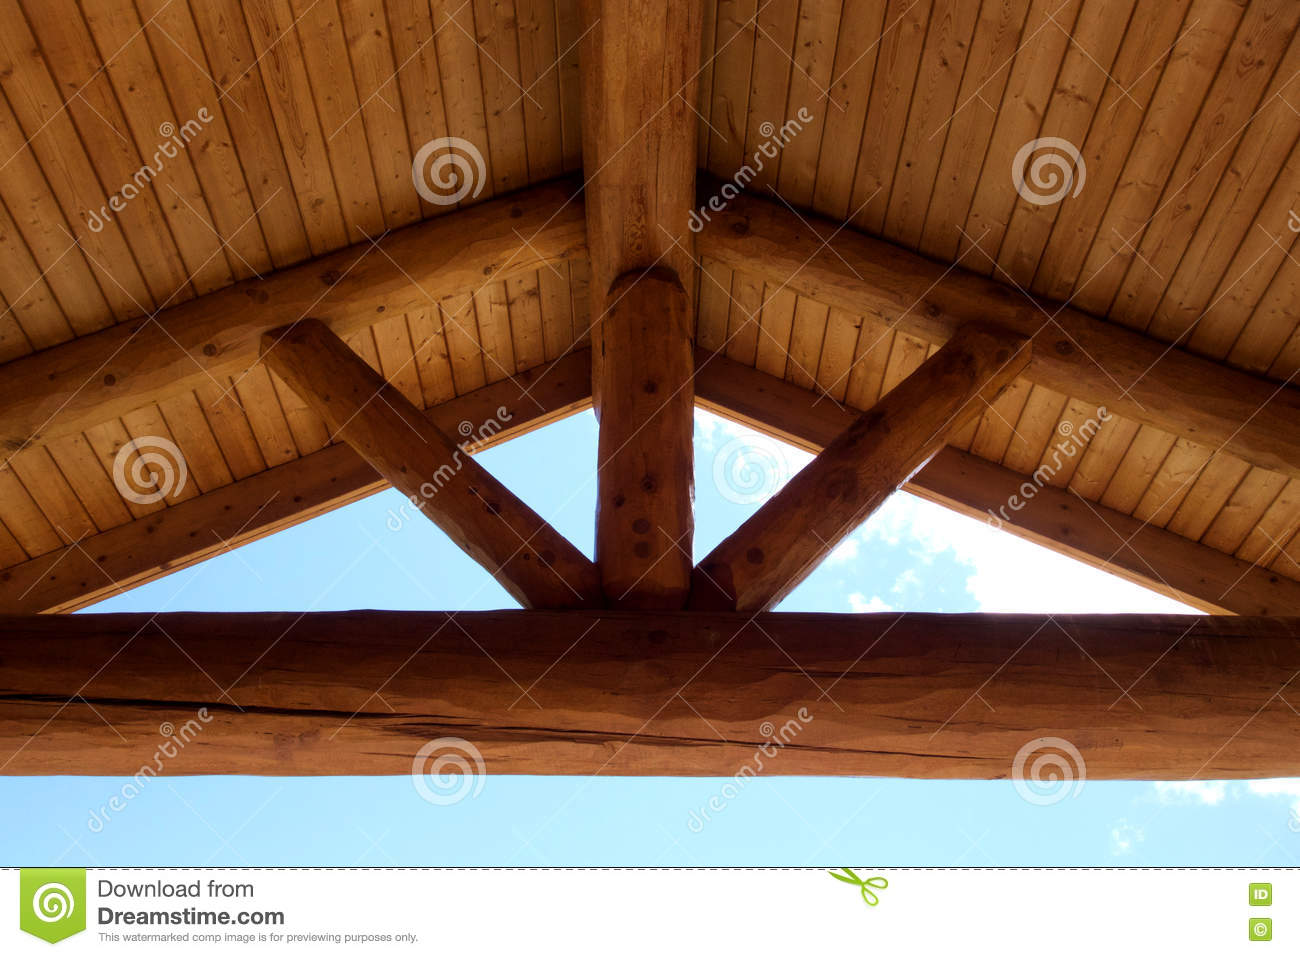 Round Timber Frame Gabel Roof Beams Stock Photo - Image of